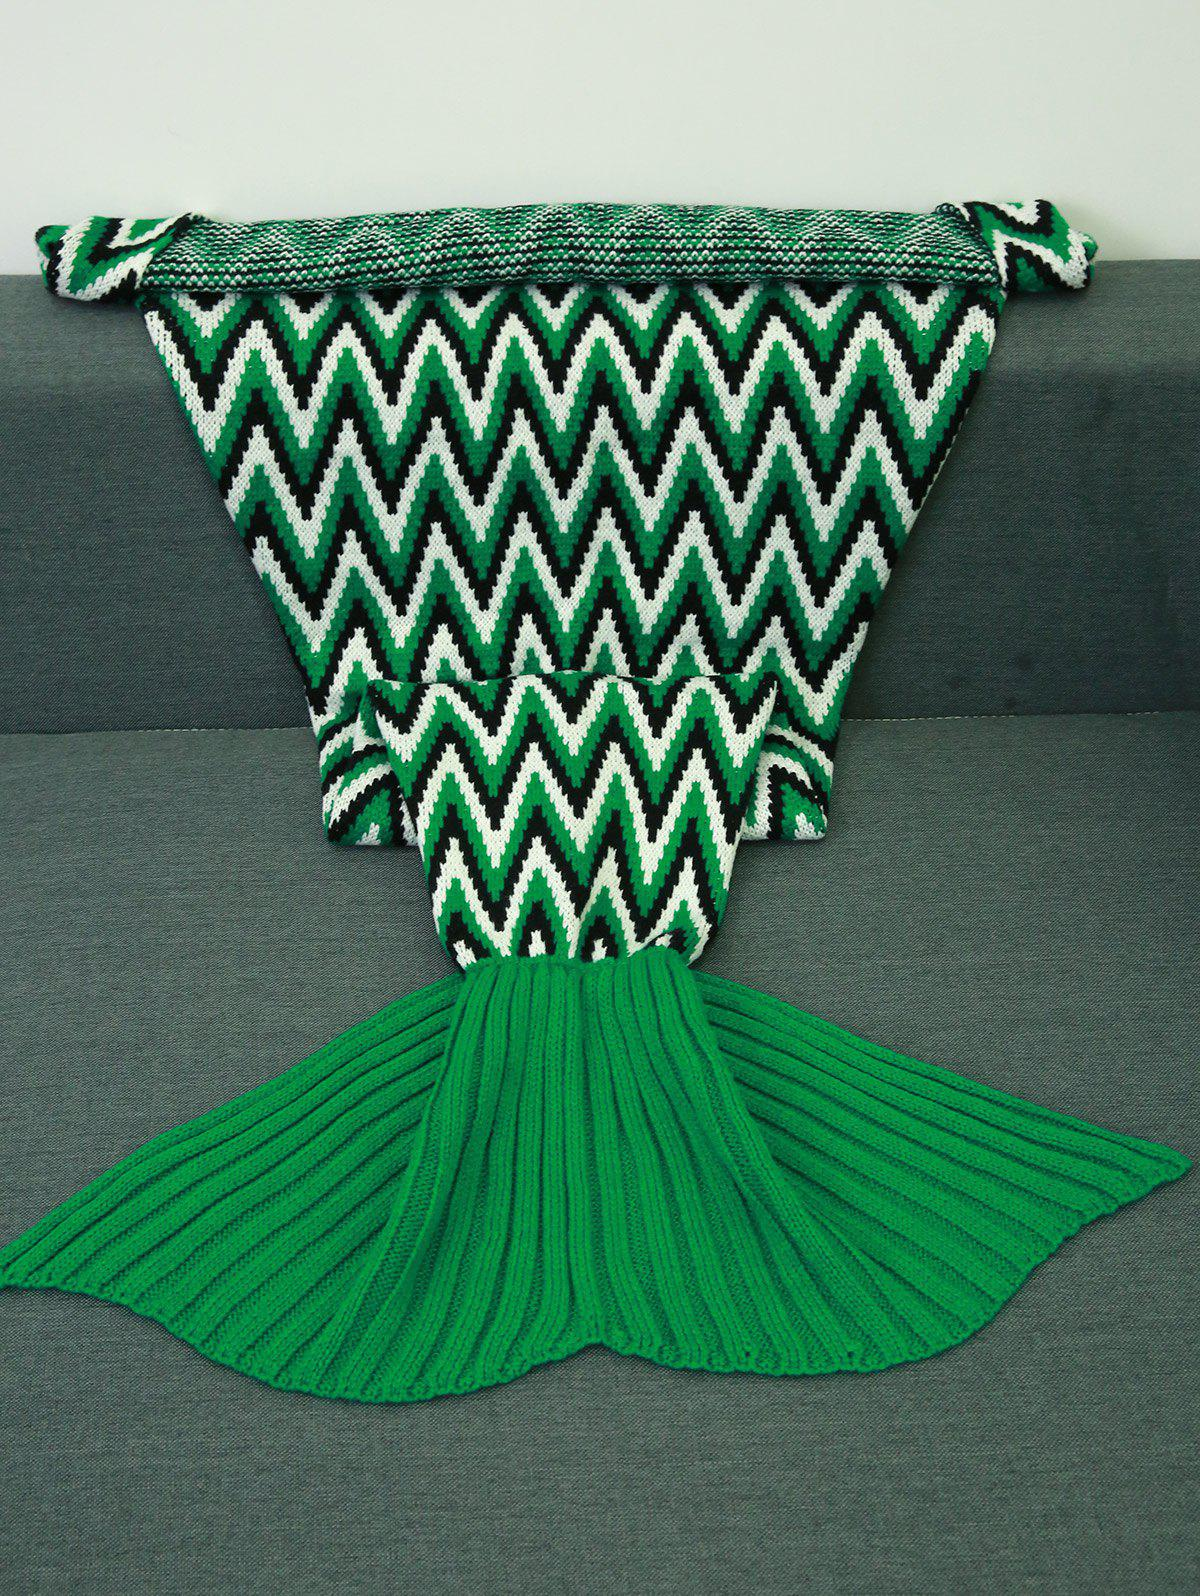 Warmth Geometric Jacquard Knitted Mermaid Tail Blanket - COLORMIX